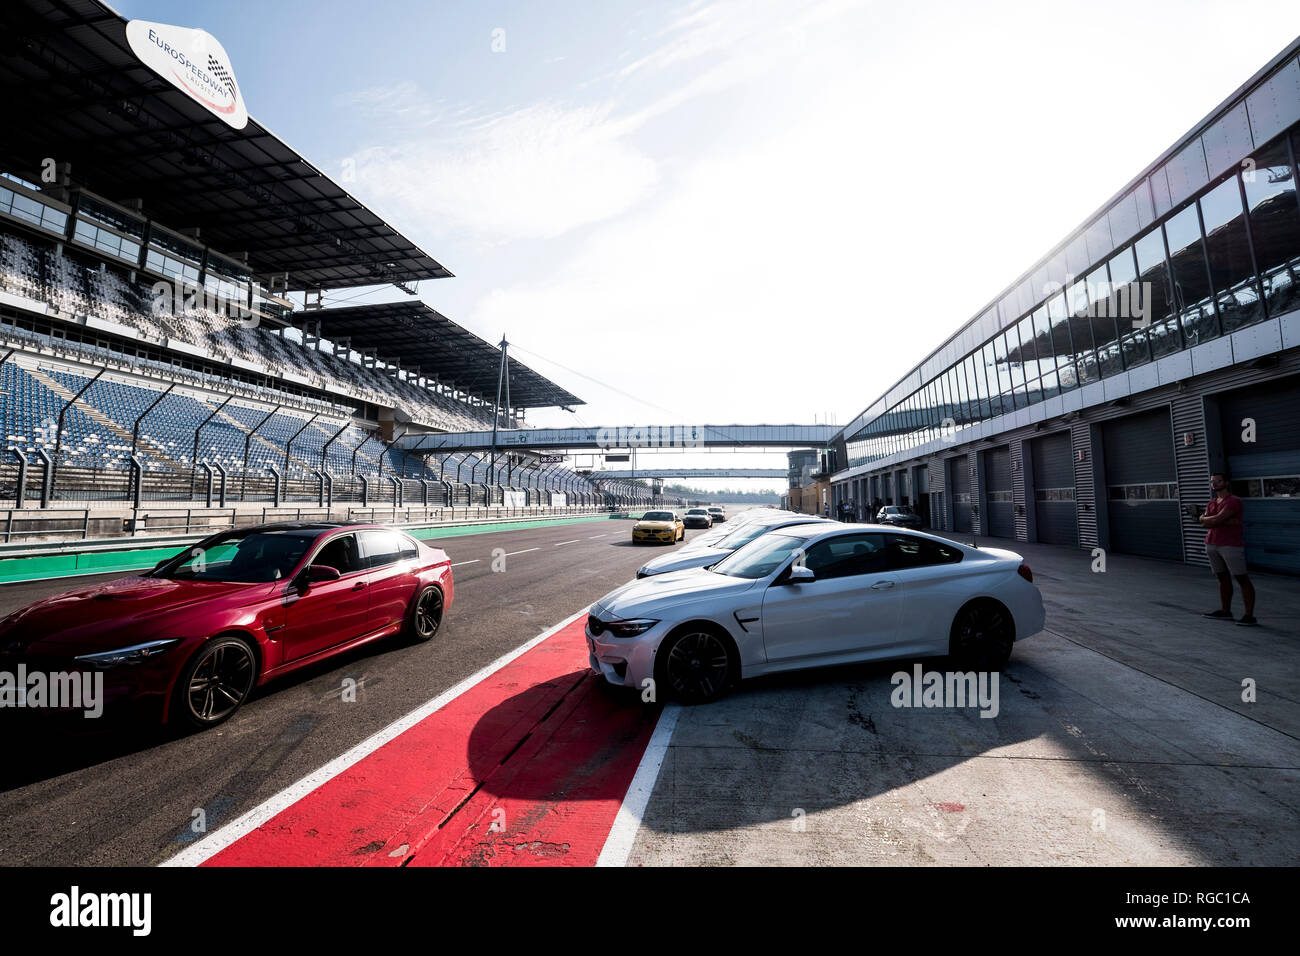 Cars and man on racetrack - Stock Image